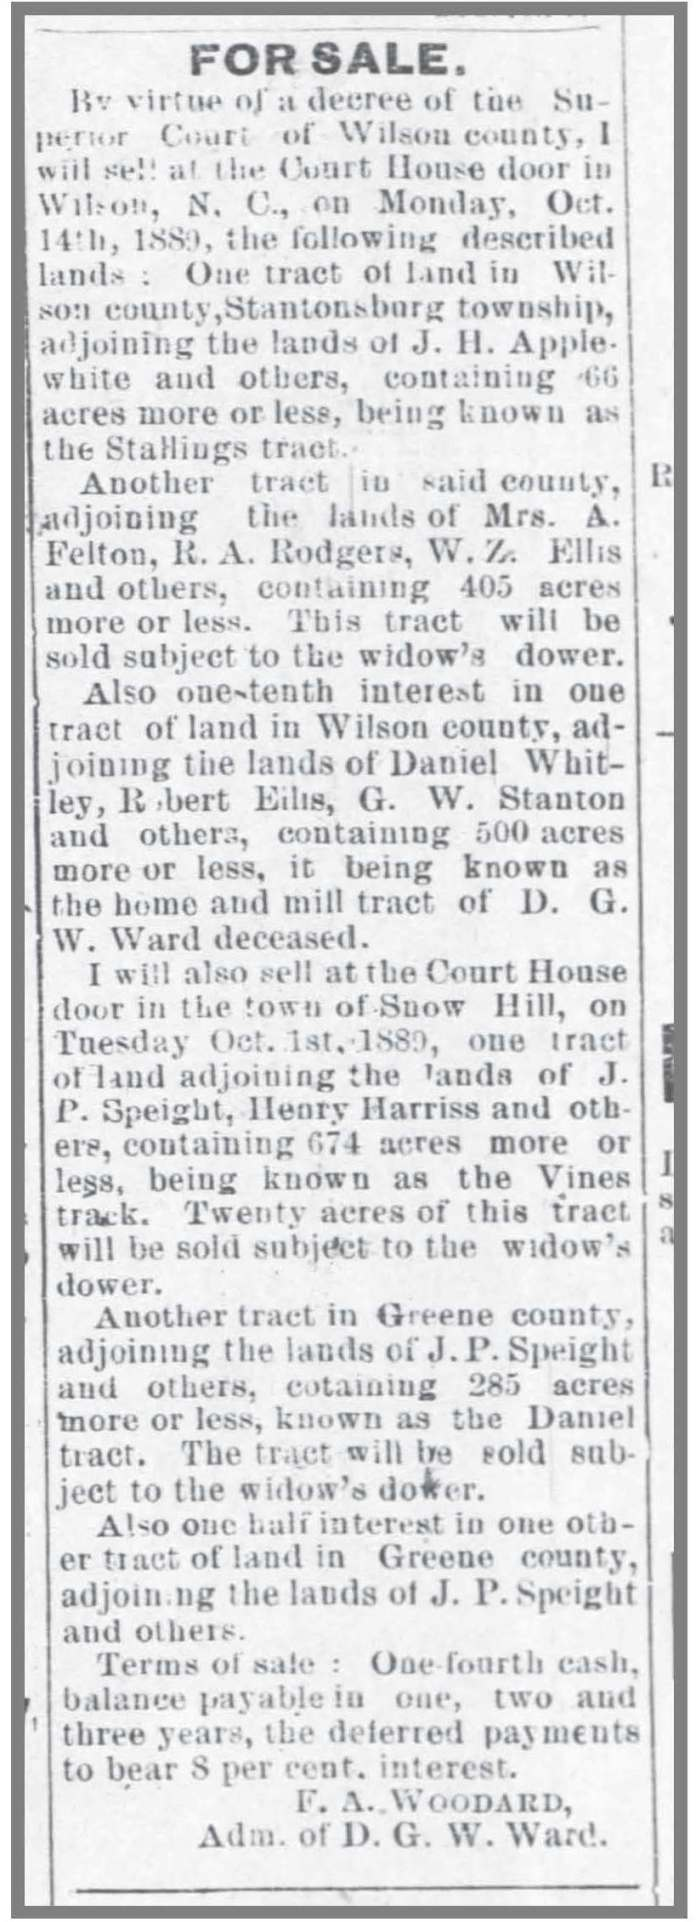 Wilson_Advance__8_22_1889_DGW_Ward_estate_land_sale